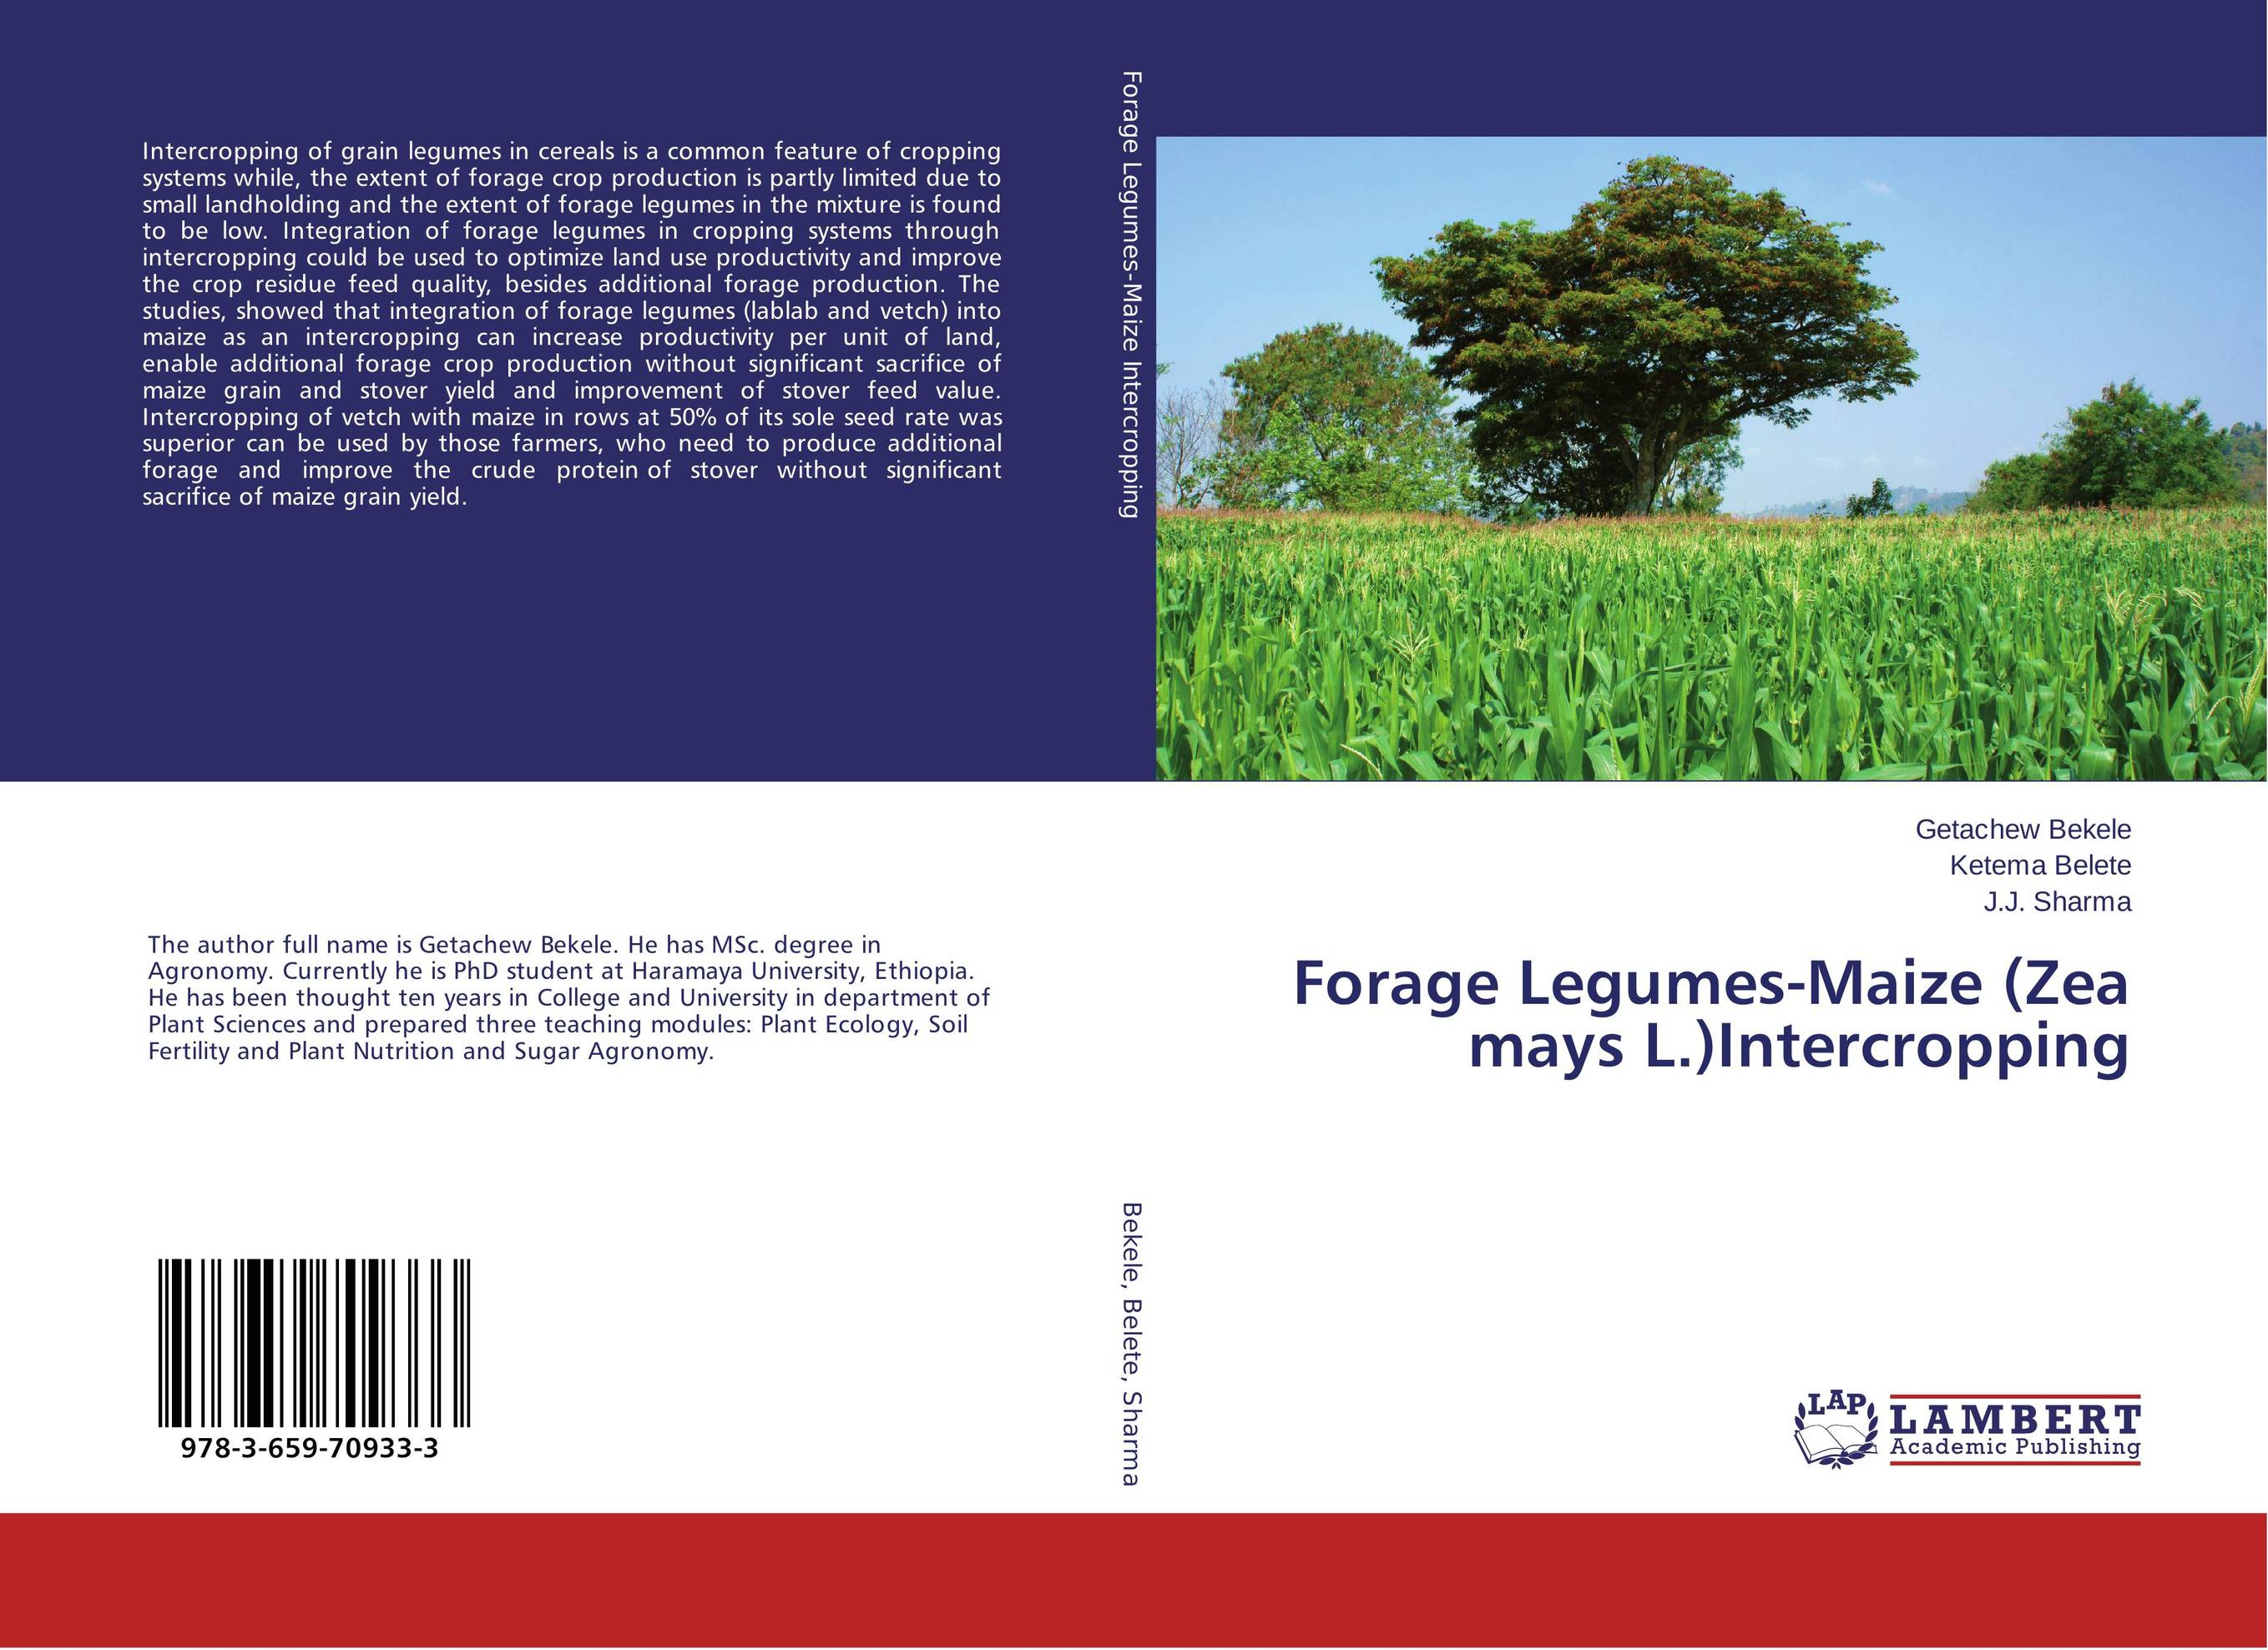 Forage Legumes-Maize (Zea mays L.)Intercropping thermo operated water valves can be used in food processing equipments biomass boilers and hydraulic systems